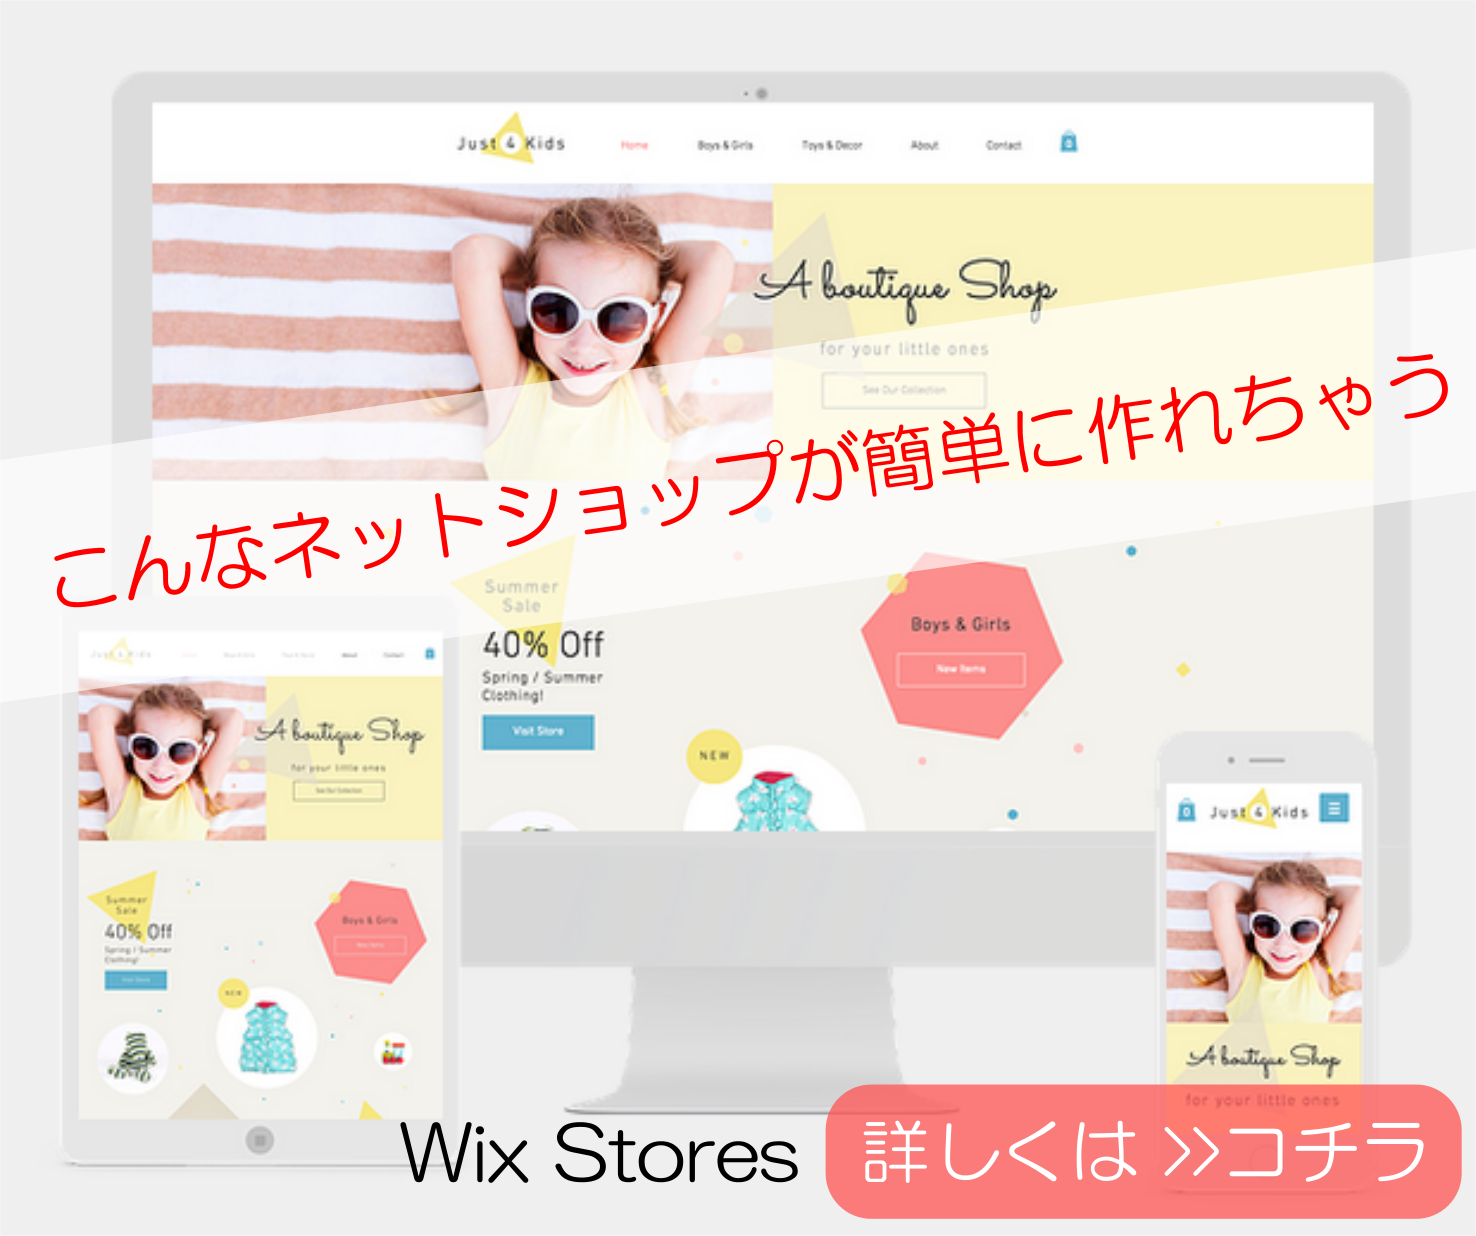 Wix Stores公式サイト